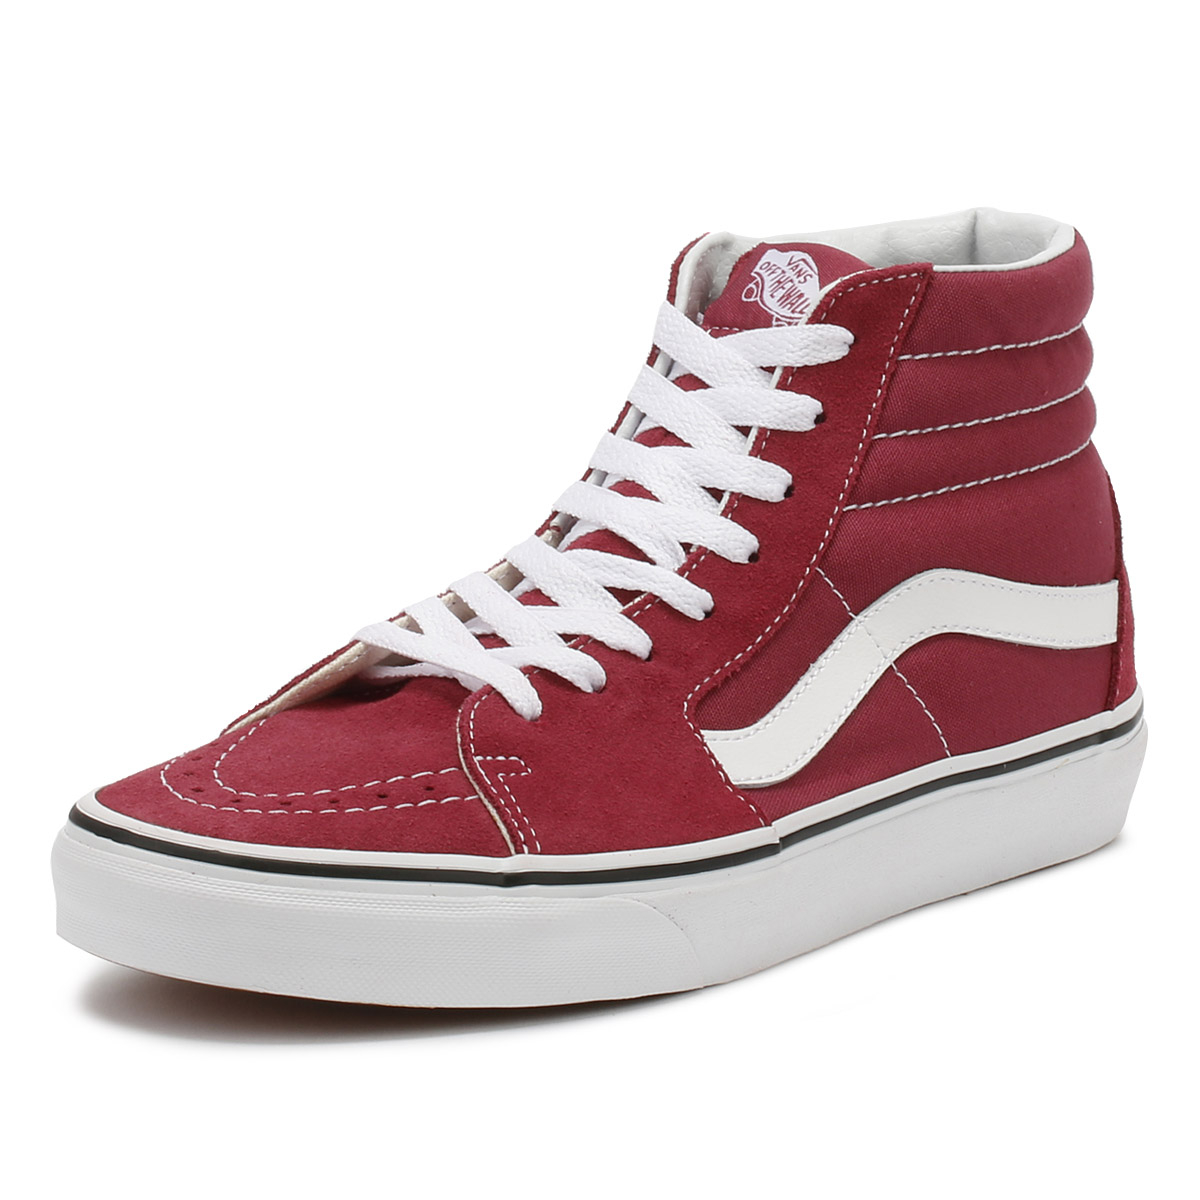 Vans Unisex Trainers Dry Rose Red Red Red & True White SK8-Hi Lace Up Sport Casual Shoes de5e53